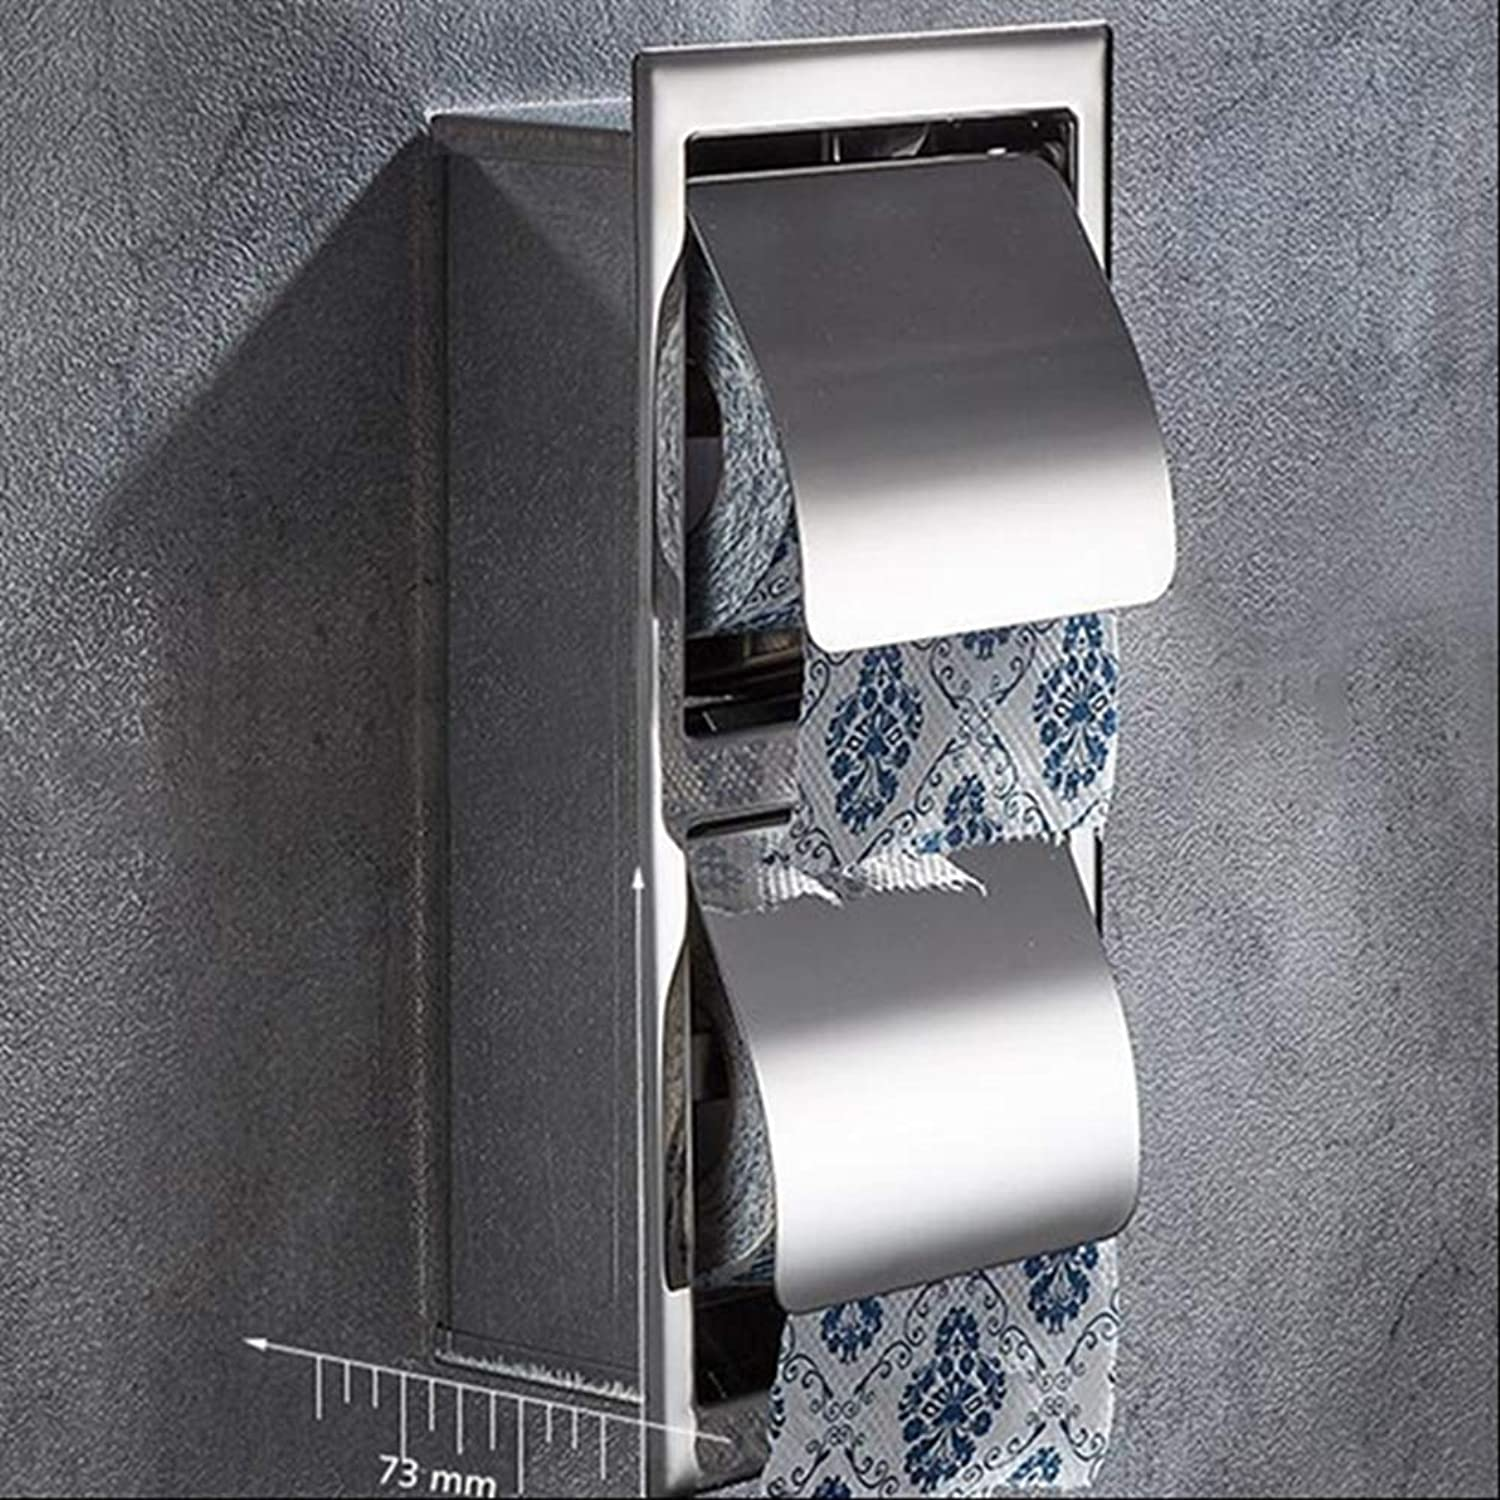 LUDSUY Luxury Sus Stainless Steel Bathroom Toilet Roll Paper Holder Box Concealed Wall Mounted Recessed Tissue Paper Holder,C